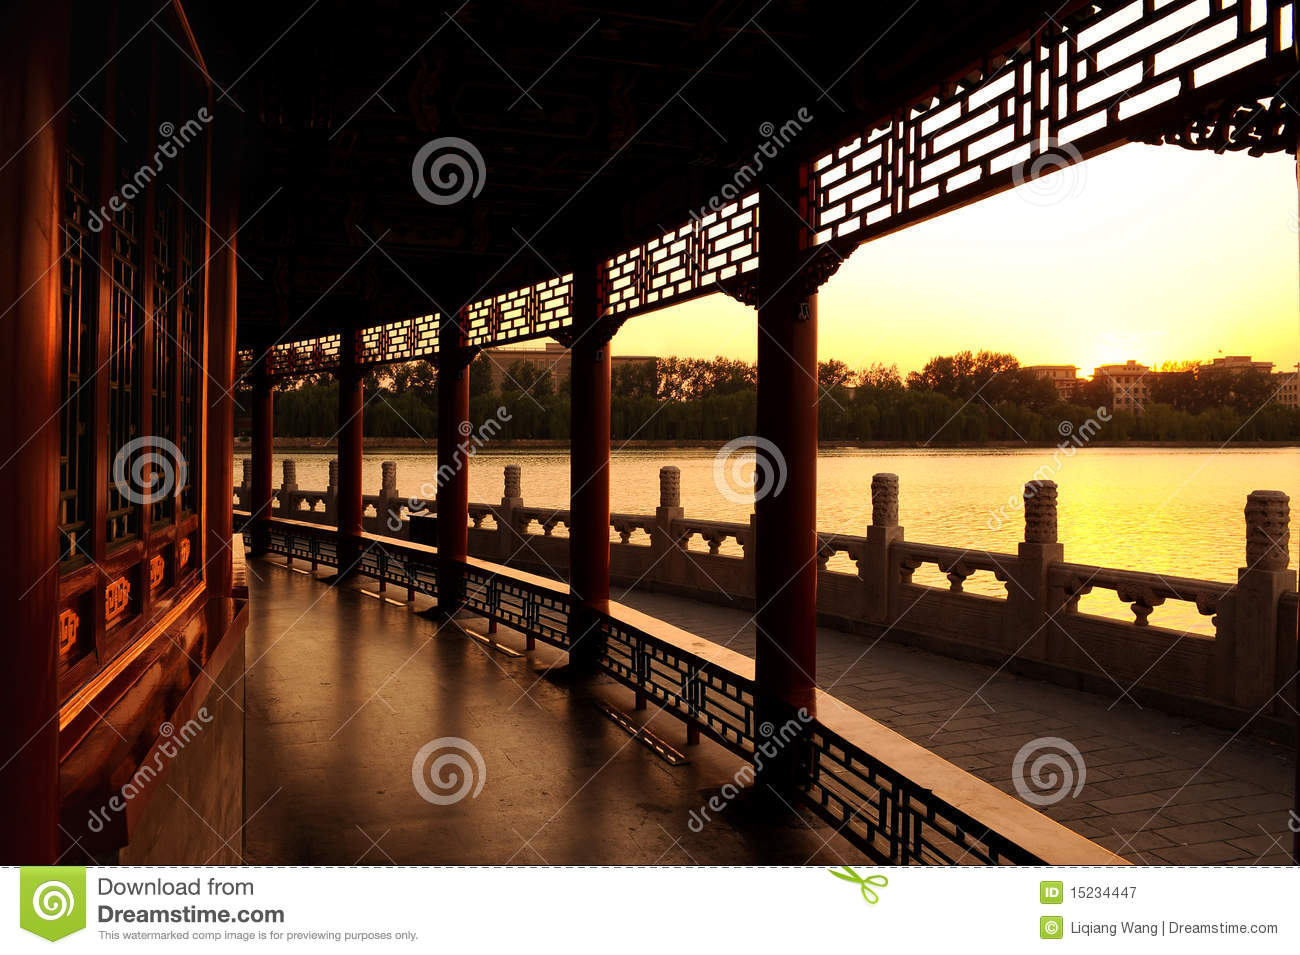 Ancient Chinese Garden Gallery Stock Image - Image of windows ...